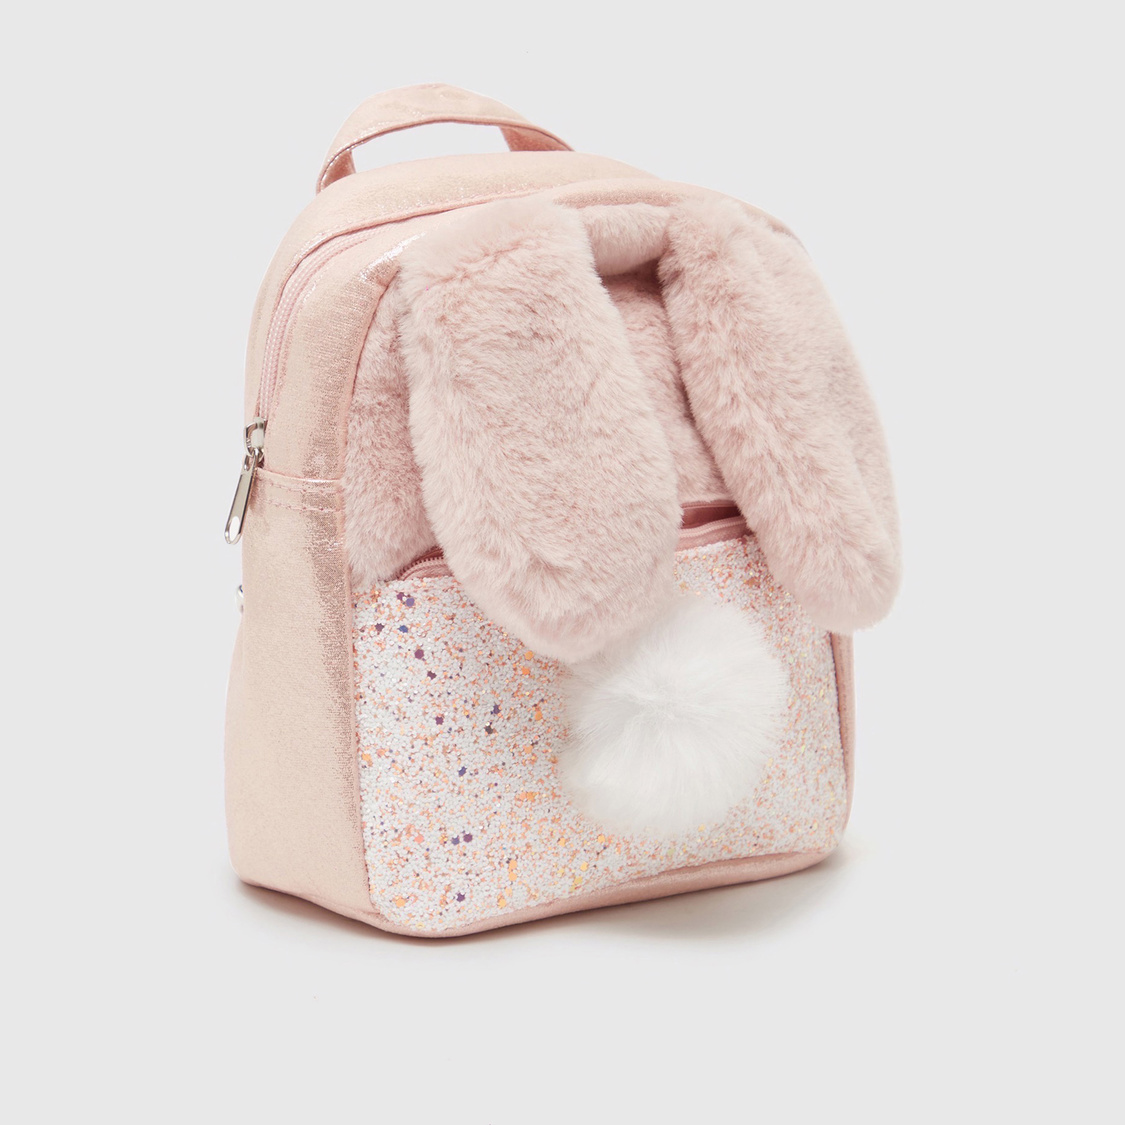 Plush Applique Detail Backpack with Adjustable Straps and Zip Closure